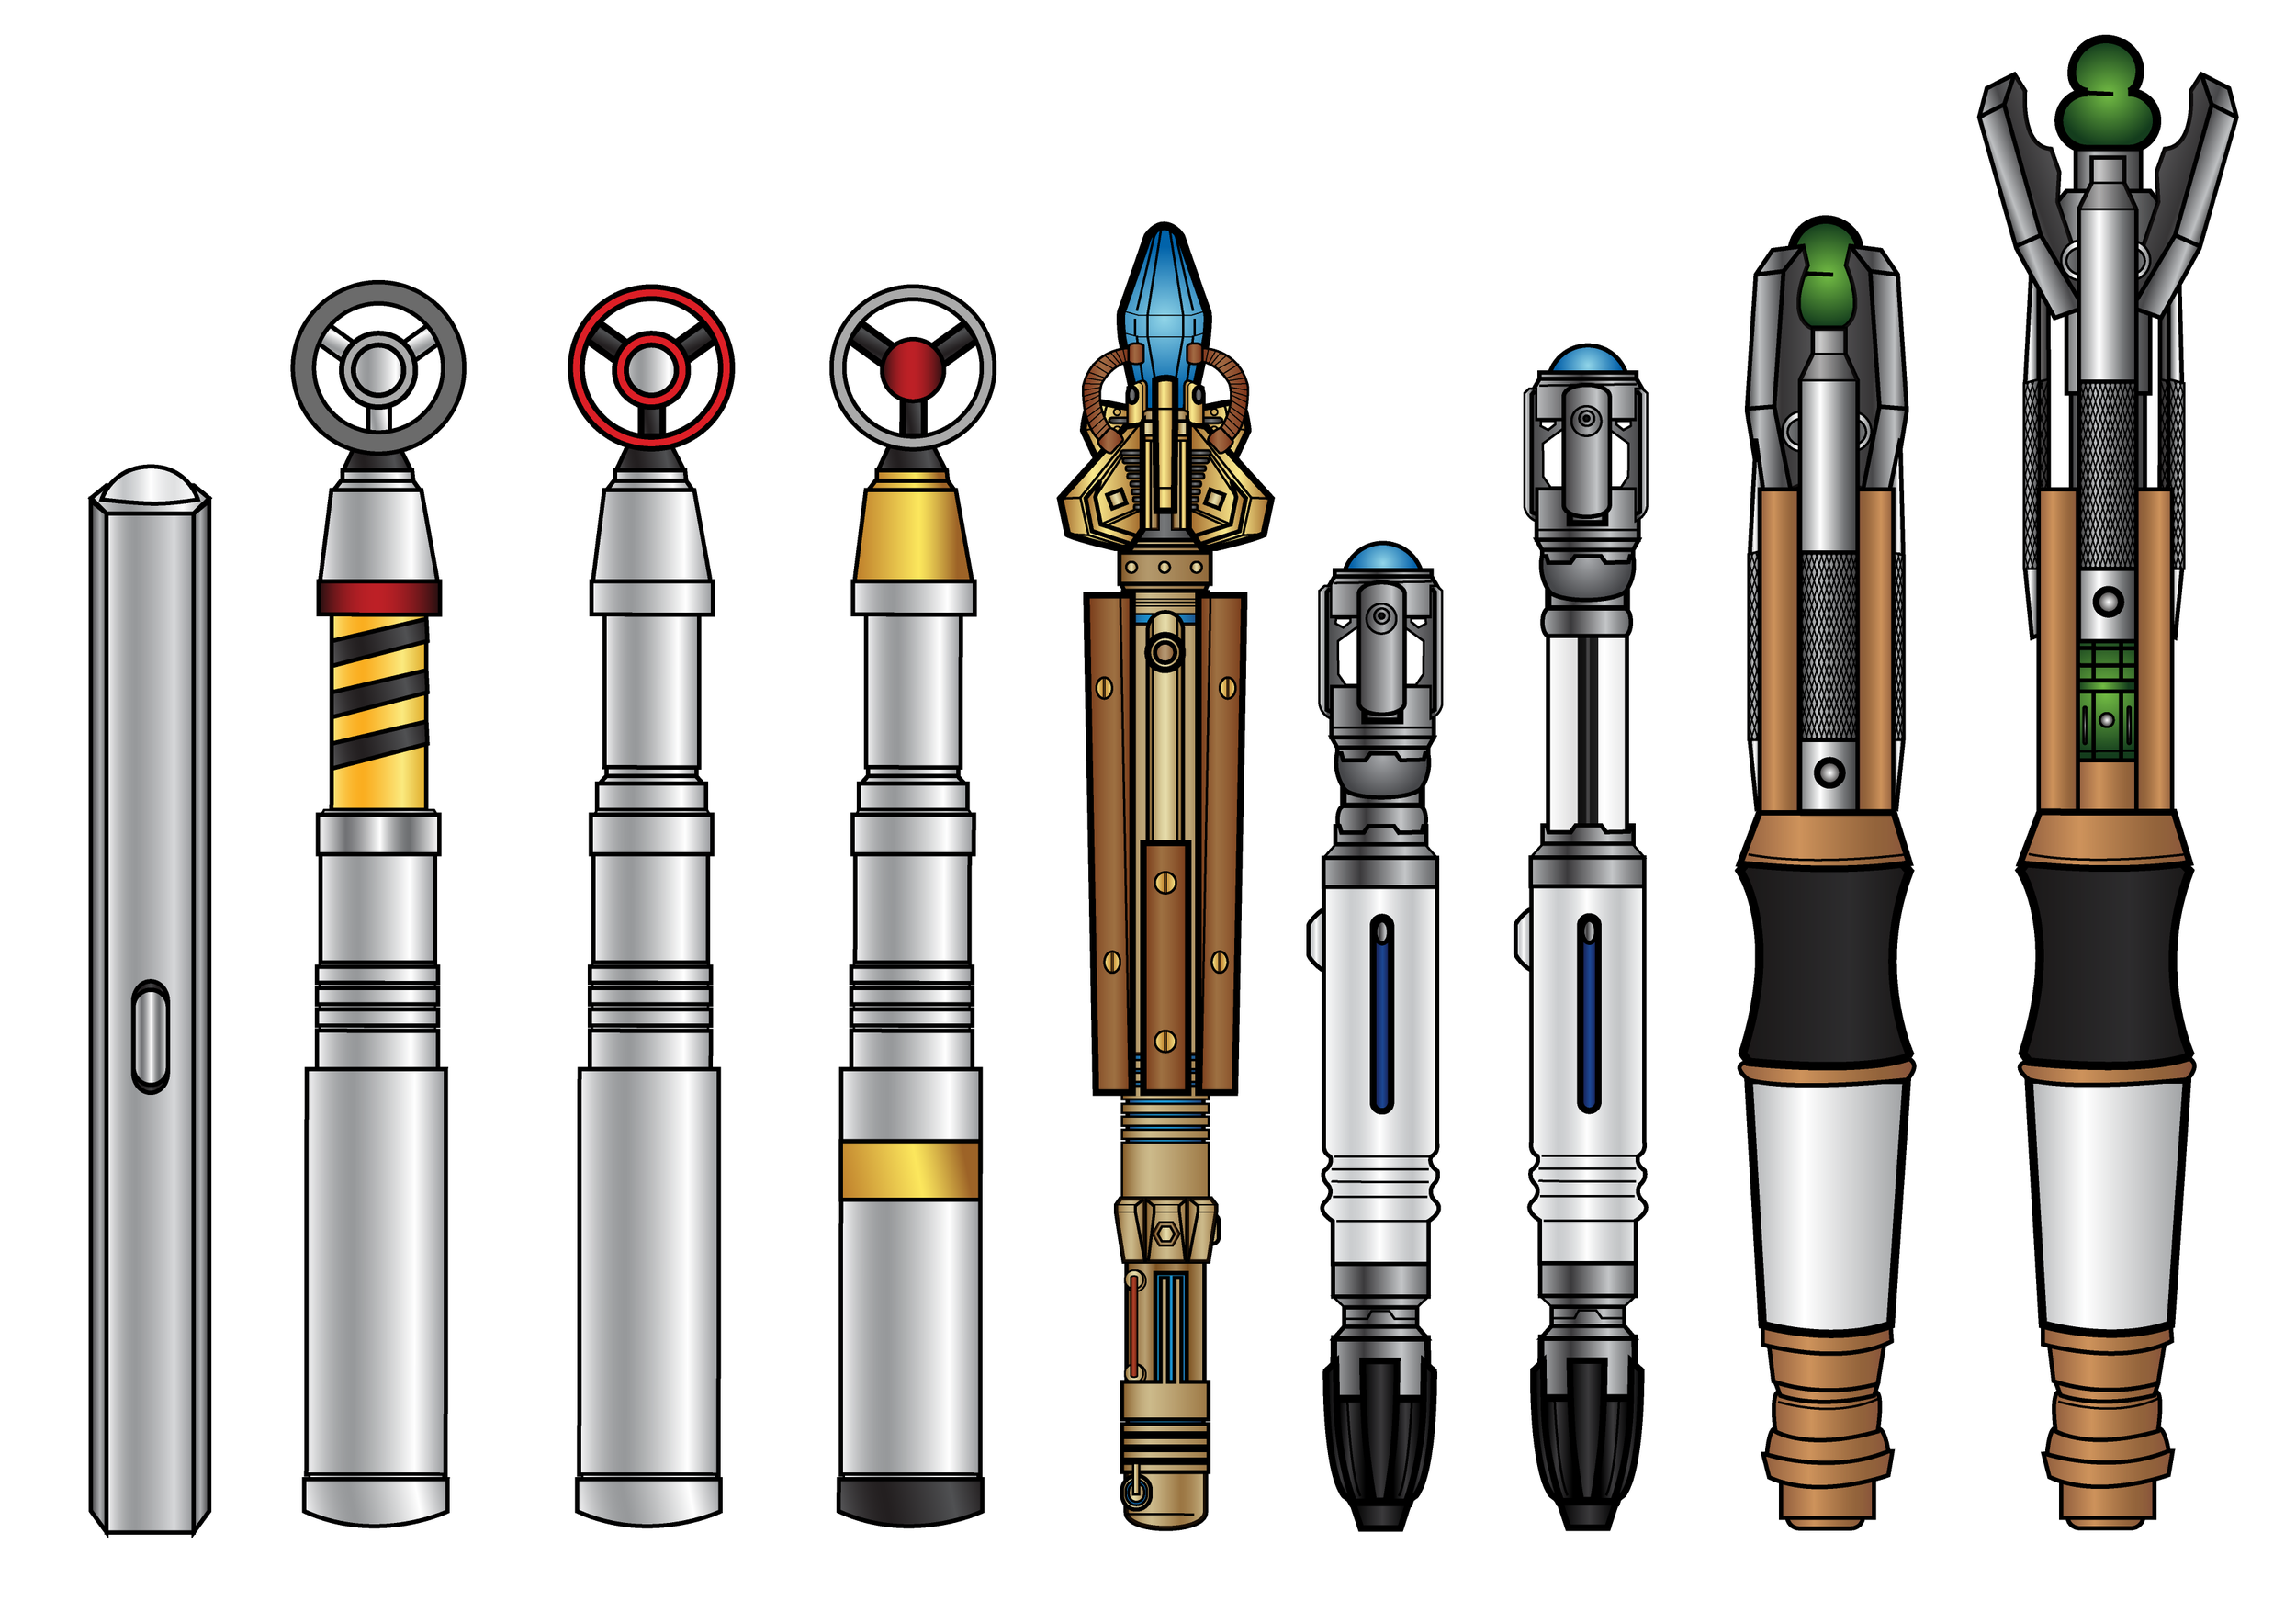 sonic-screwdrivers.png